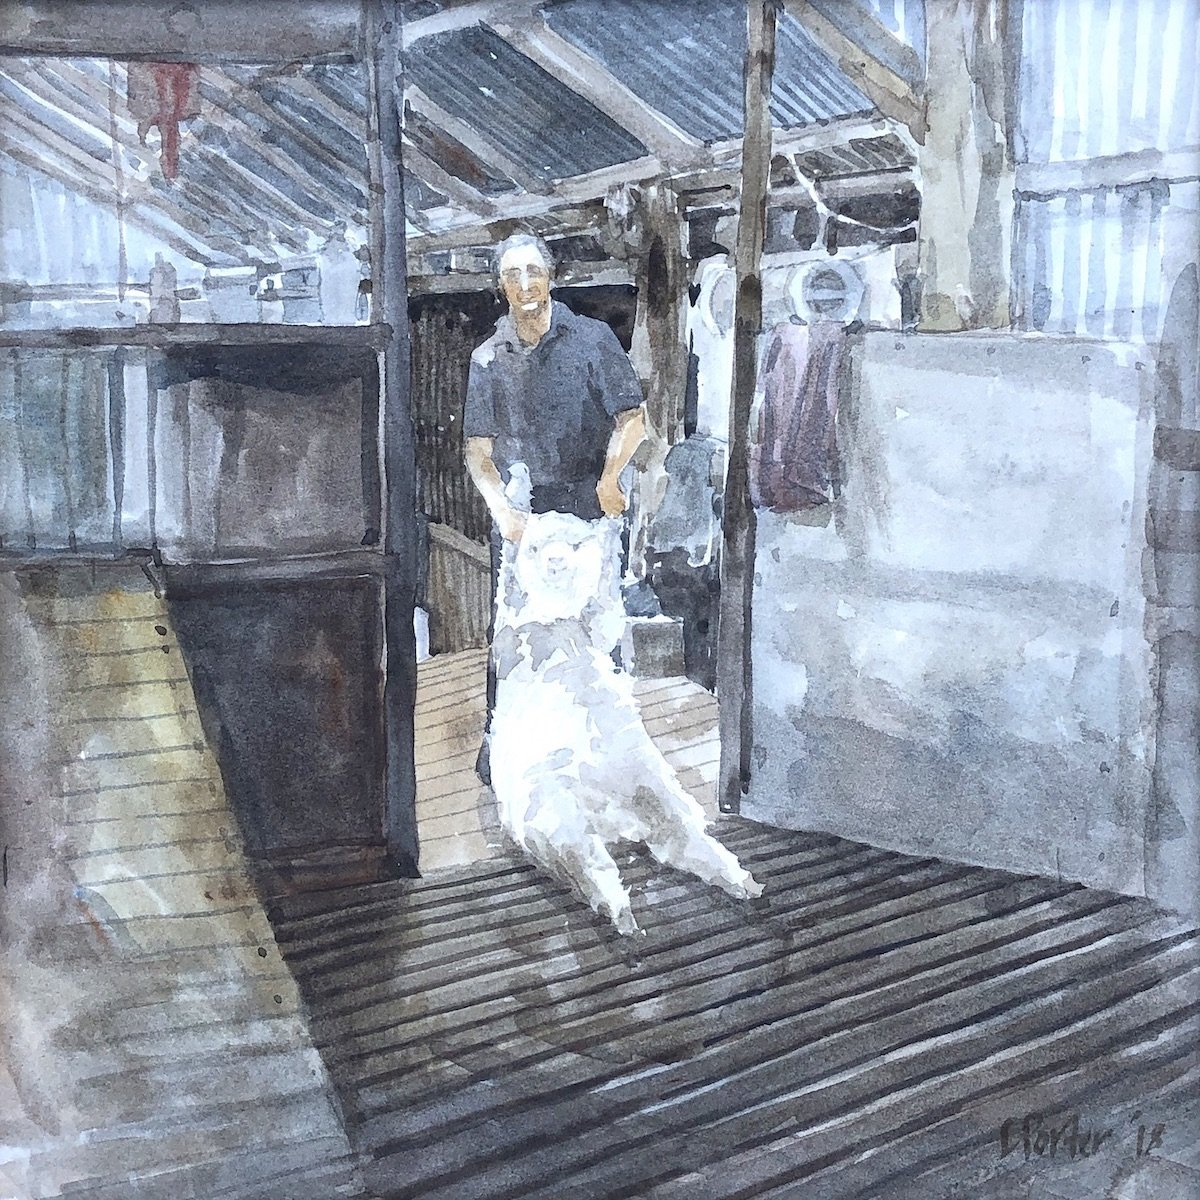 Watercolour painting by Christine Porter showing a shearer dragging a sheep from the pens behind his stand into his place on the board.